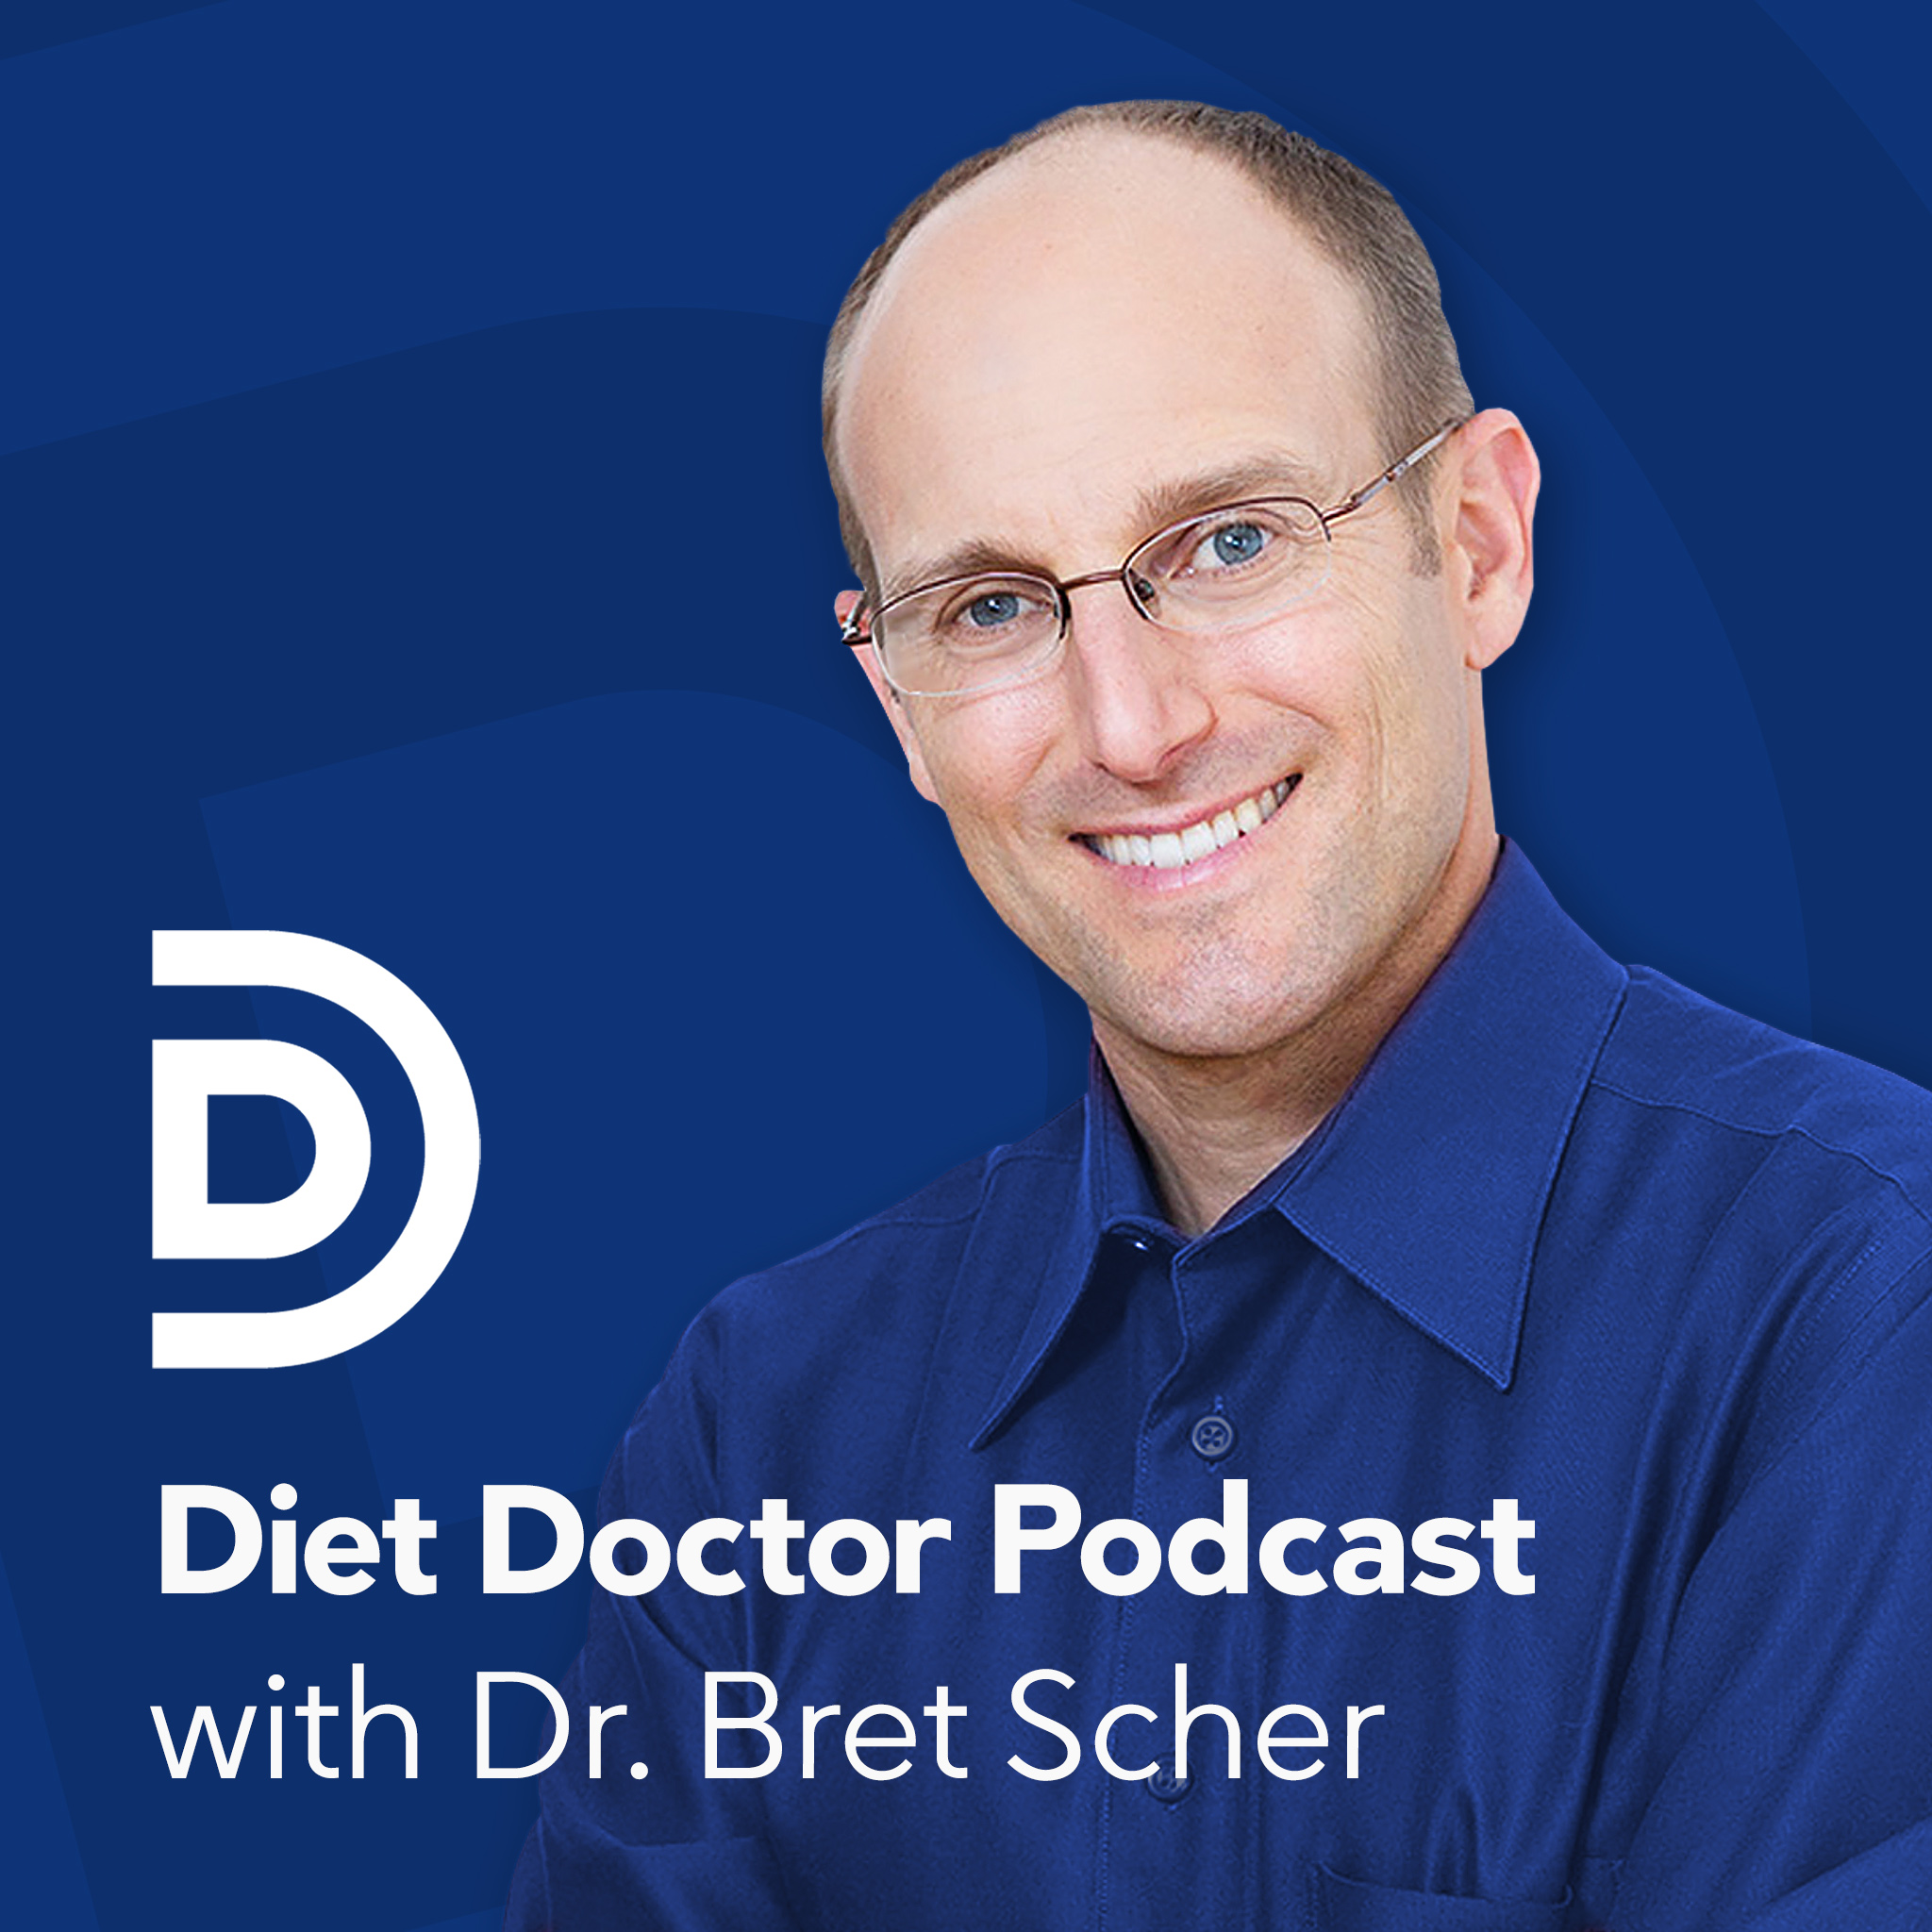 Diet Doctor Podcast - Dr. Bret Scher hired us to film a video version of his health and nutrition podcast at the 2018 Low Carb Conference at the University of Houston. Check out his podcast for up-to-date information on the low carb lifestyle and other topic relating to health and nutrition.